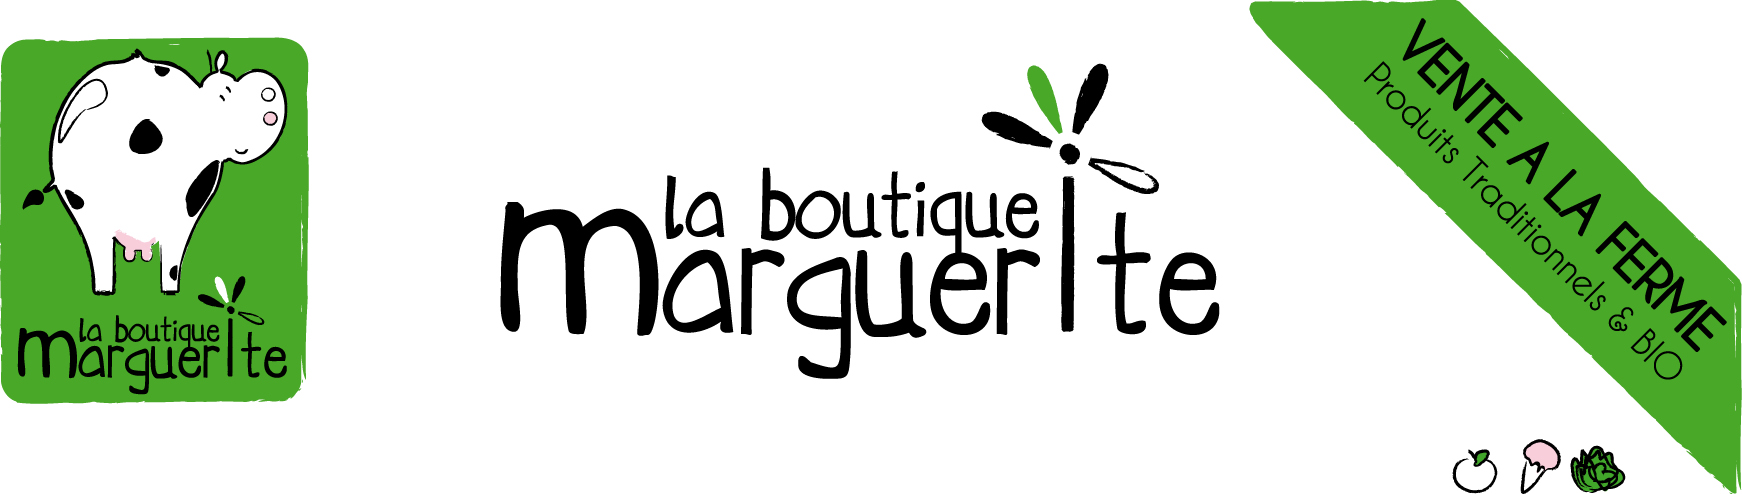 laboutiquemarguerite-2013